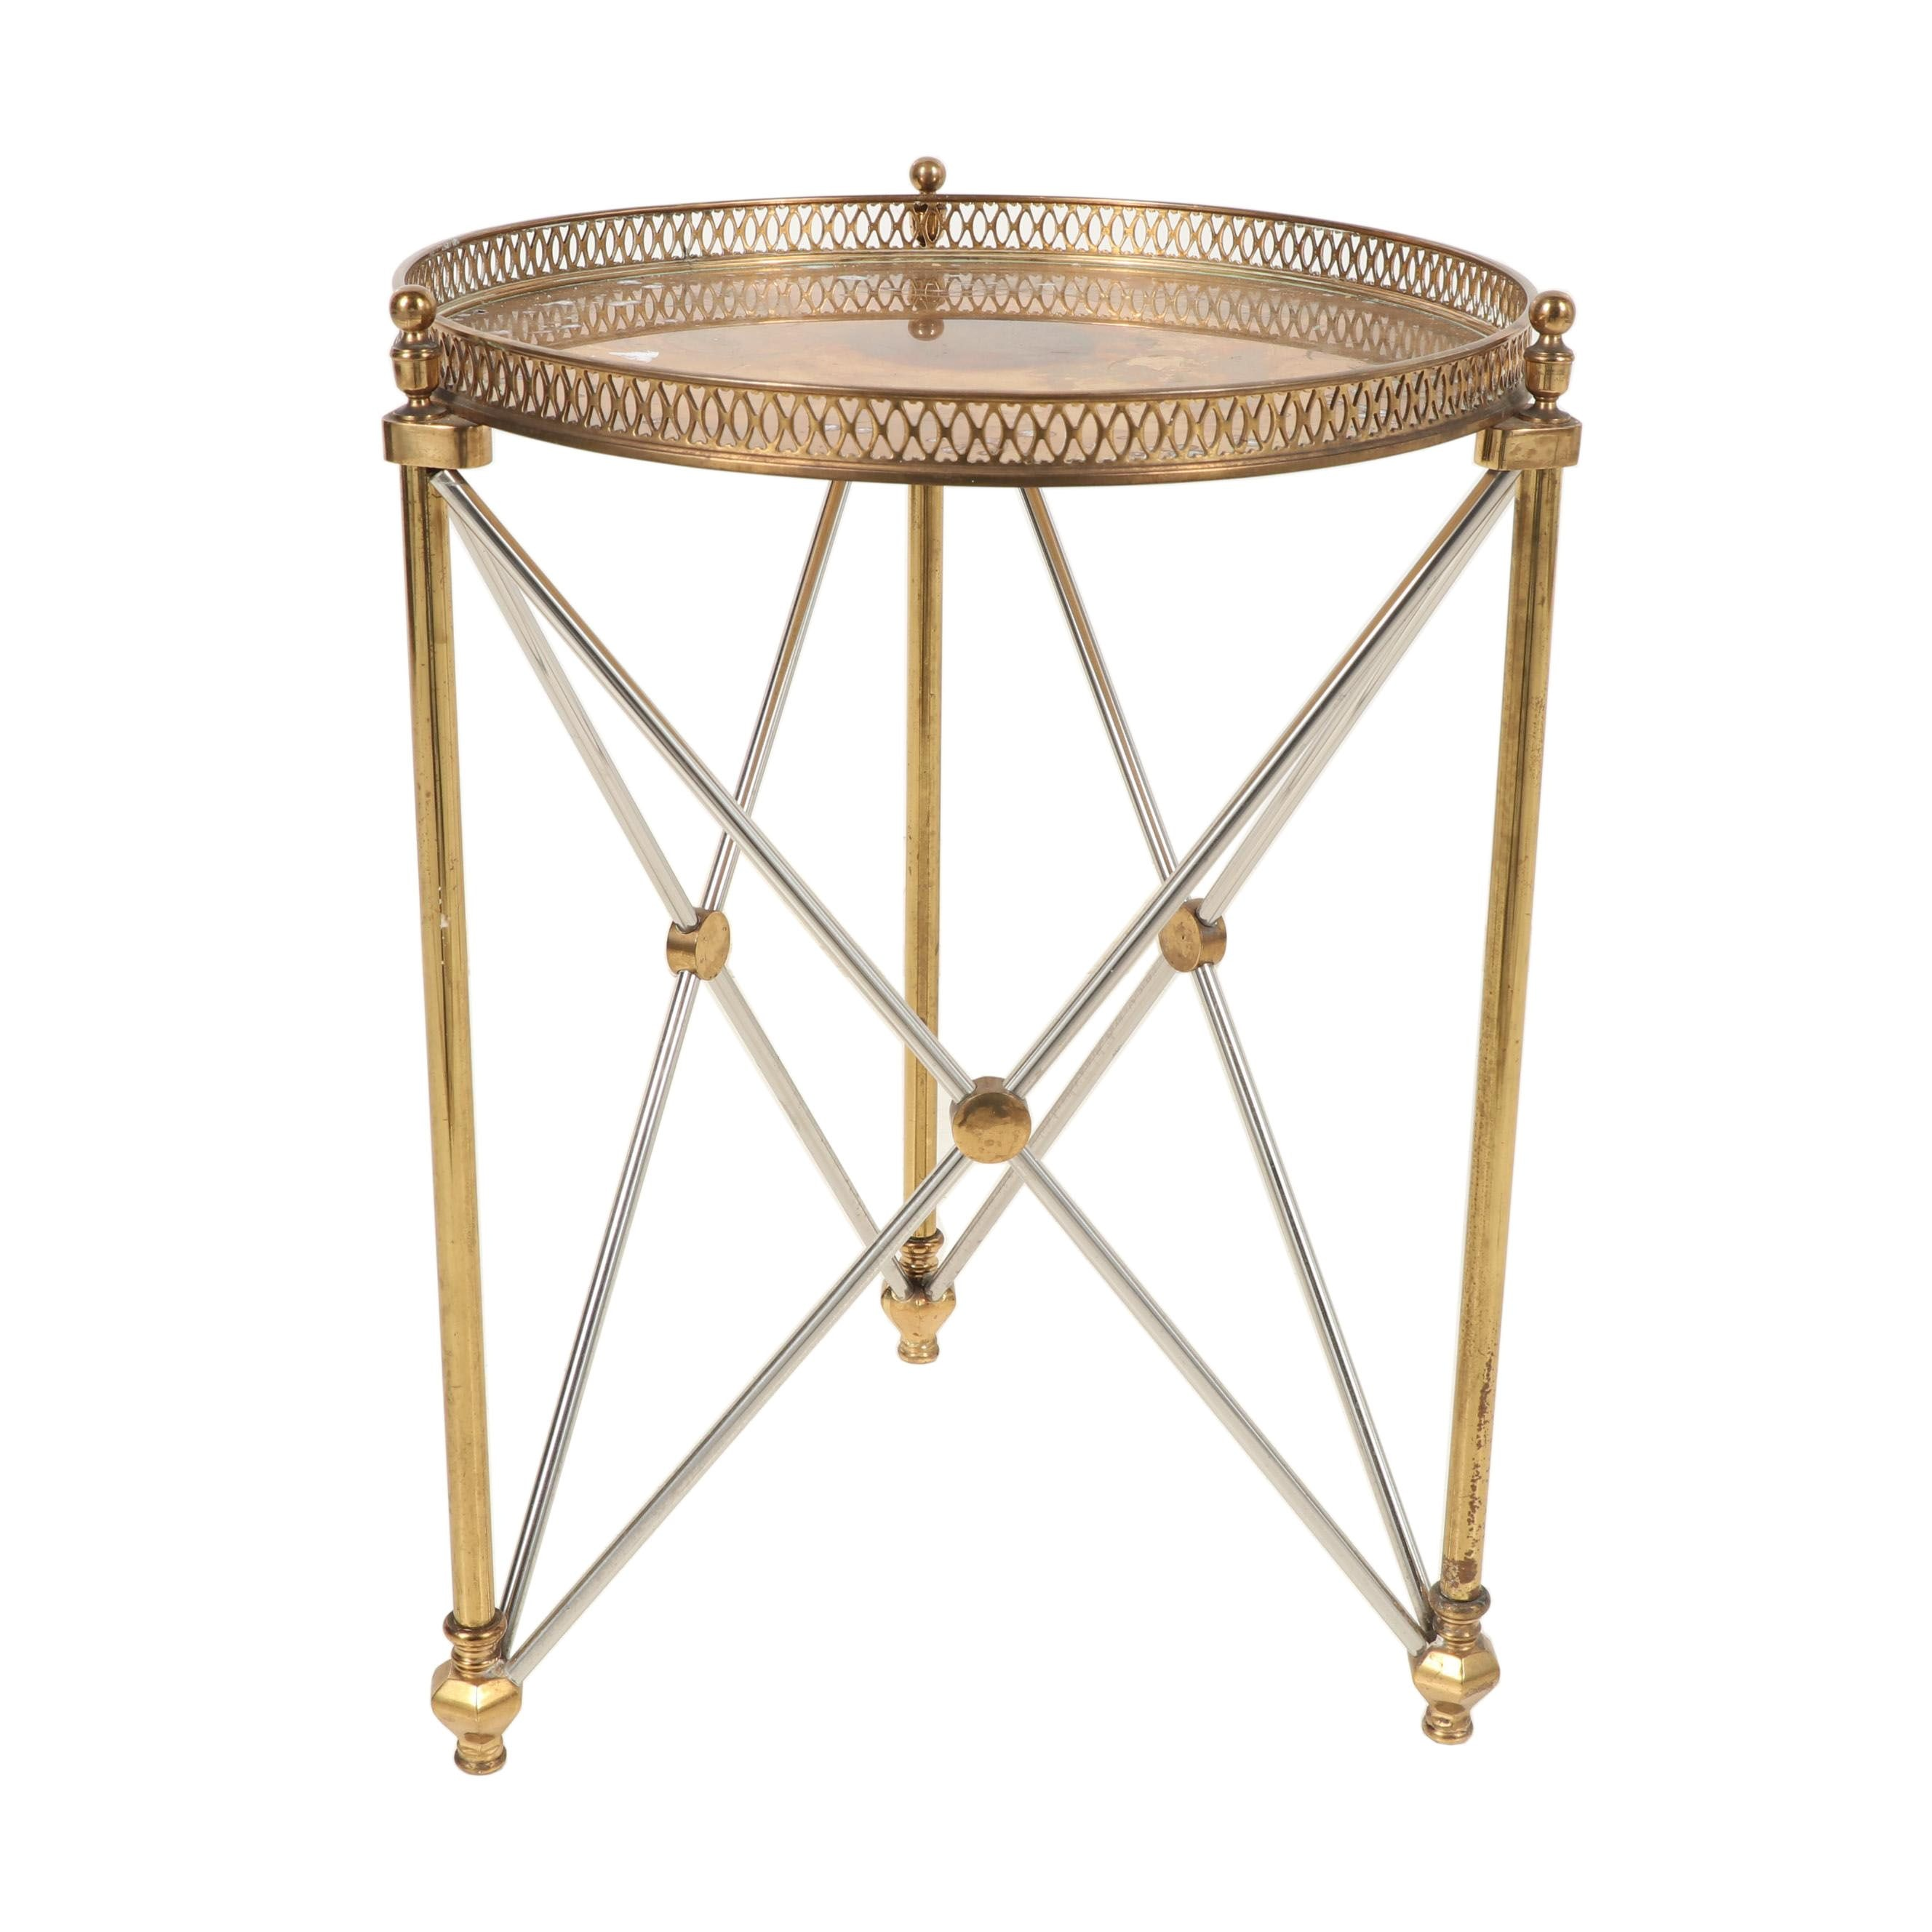 Decorative Crafts Brass and Chrome Tray Top Accent Table, 20th Century